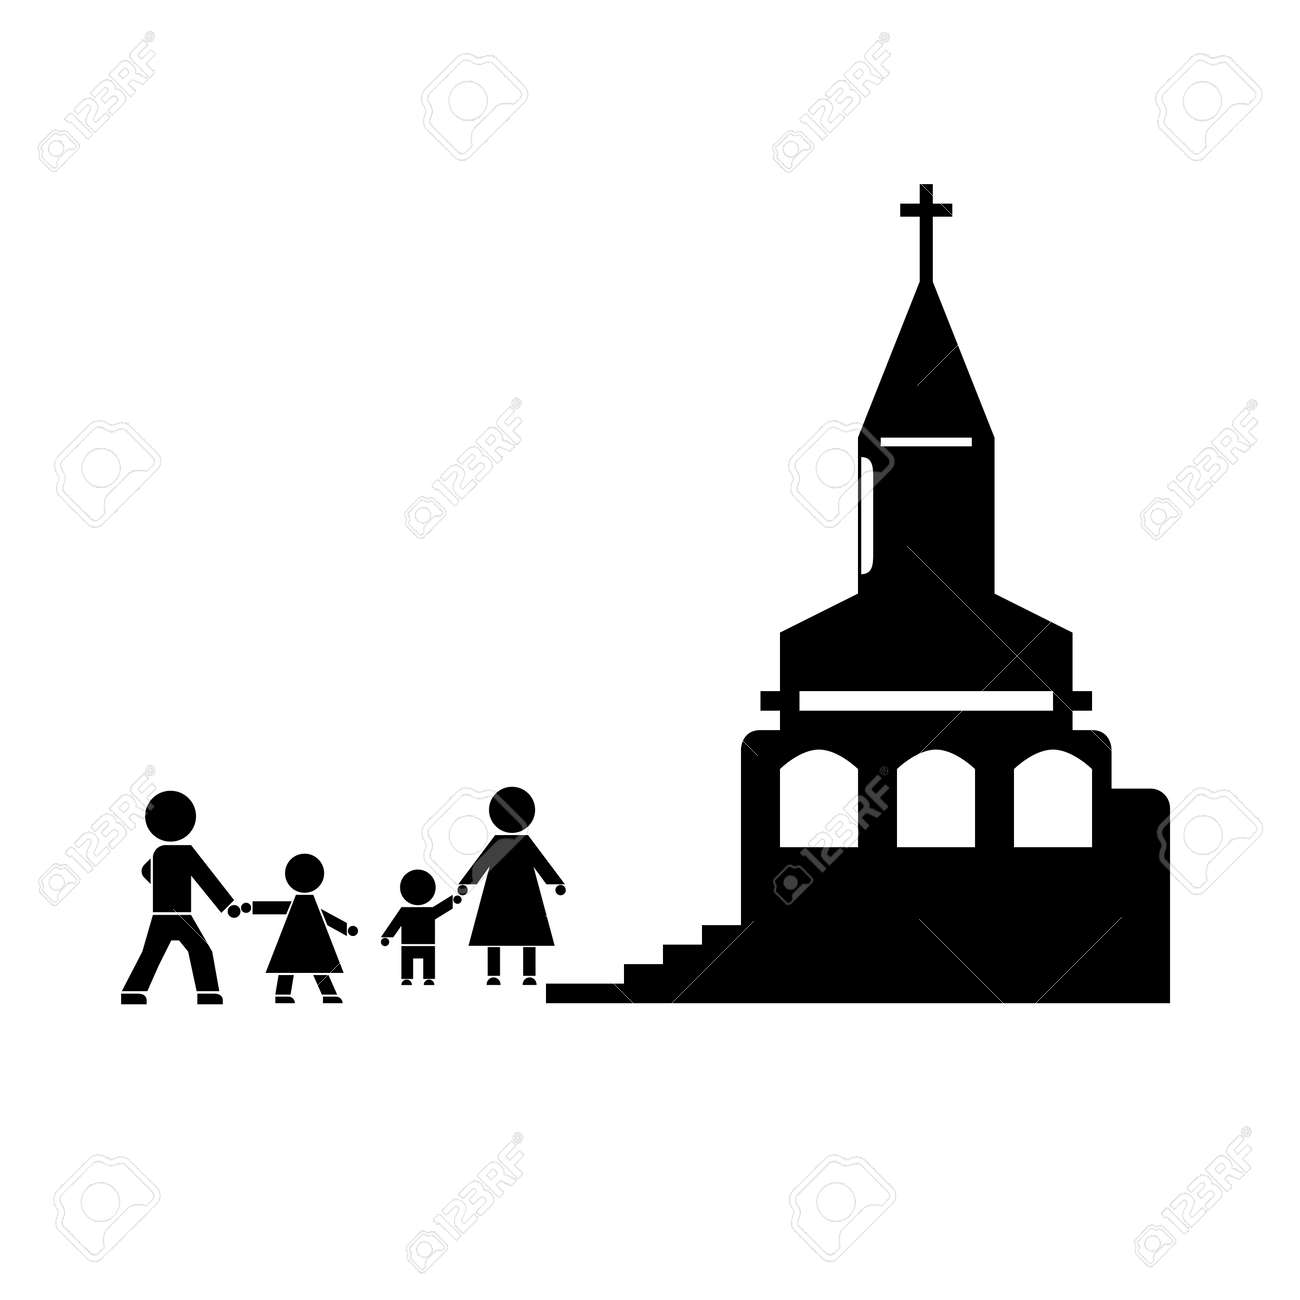 Figures of people people go to church family the family attends figures of people people go to church family the family attends church symbols buycottarizona Gallery